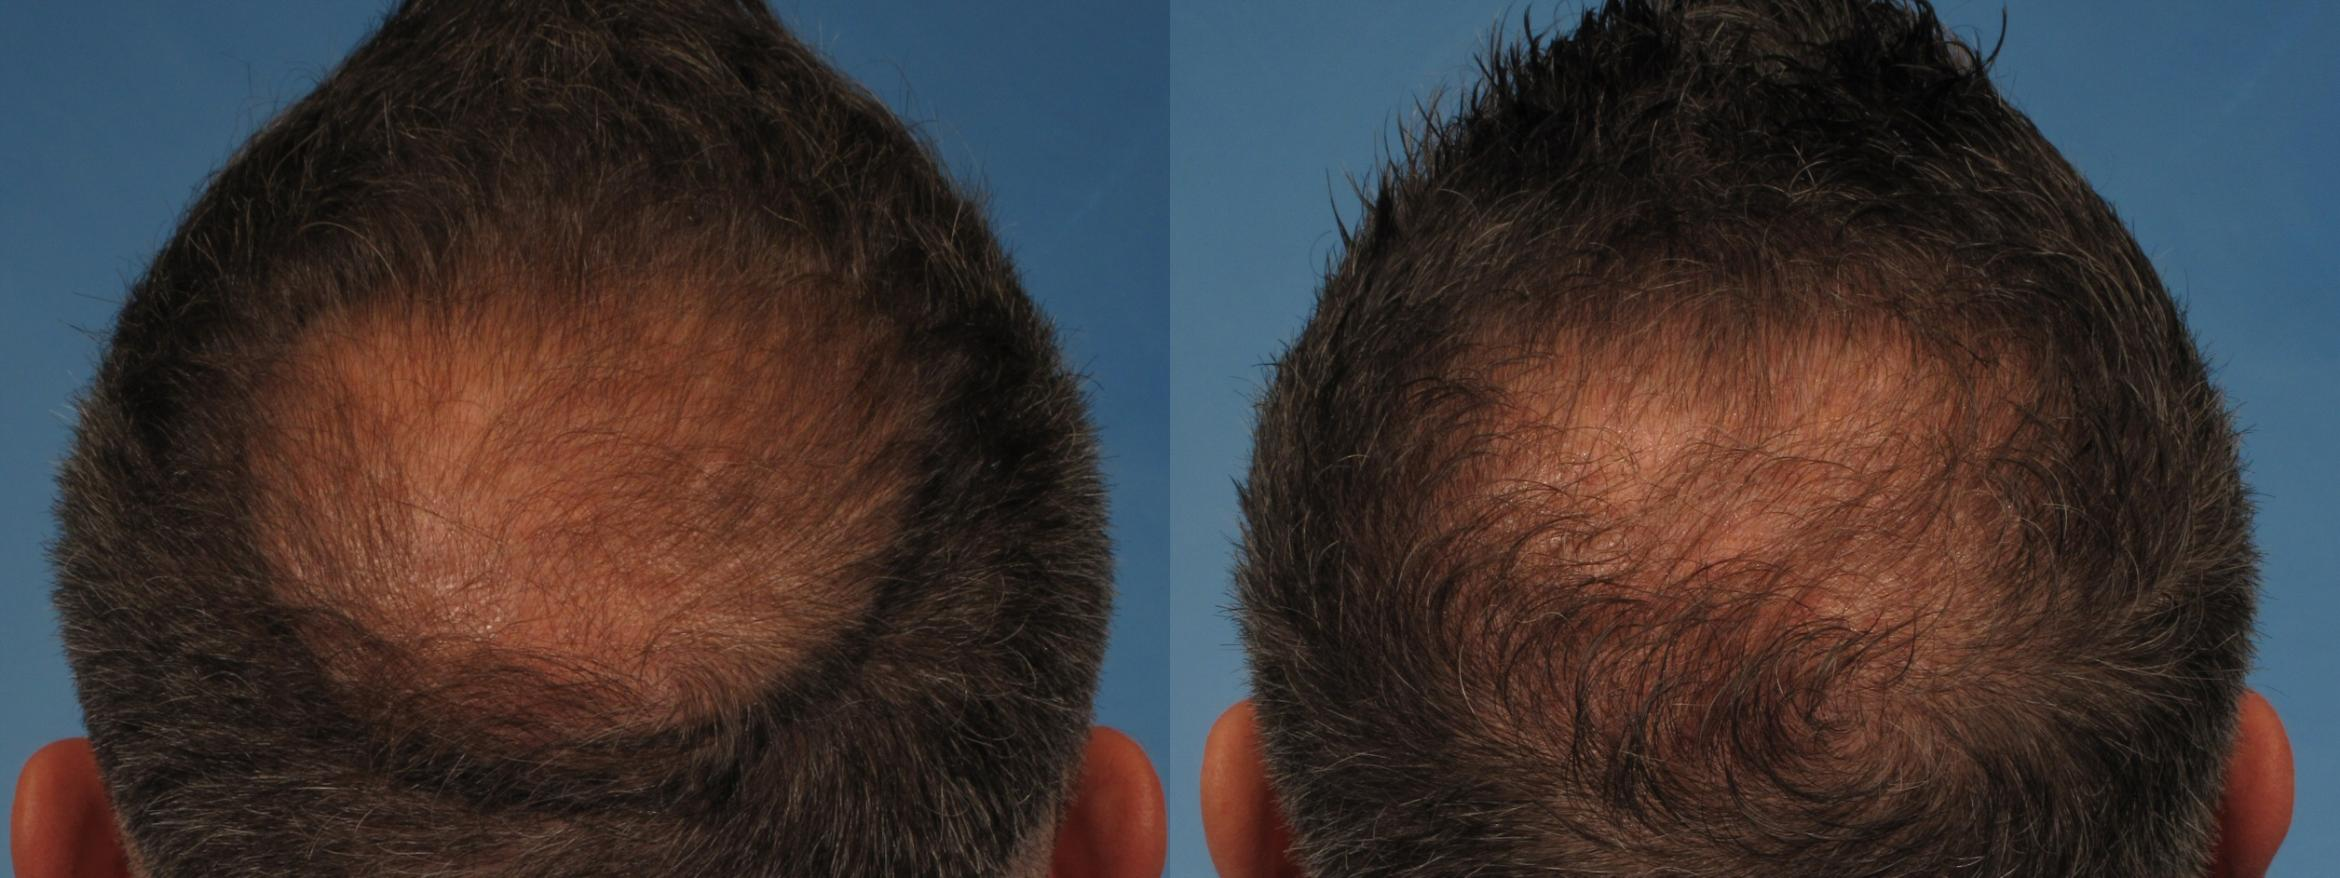 Hair Restoration Case 227 Before & After View #2 | Naples, FL | Kent V. Hasen, M.D.